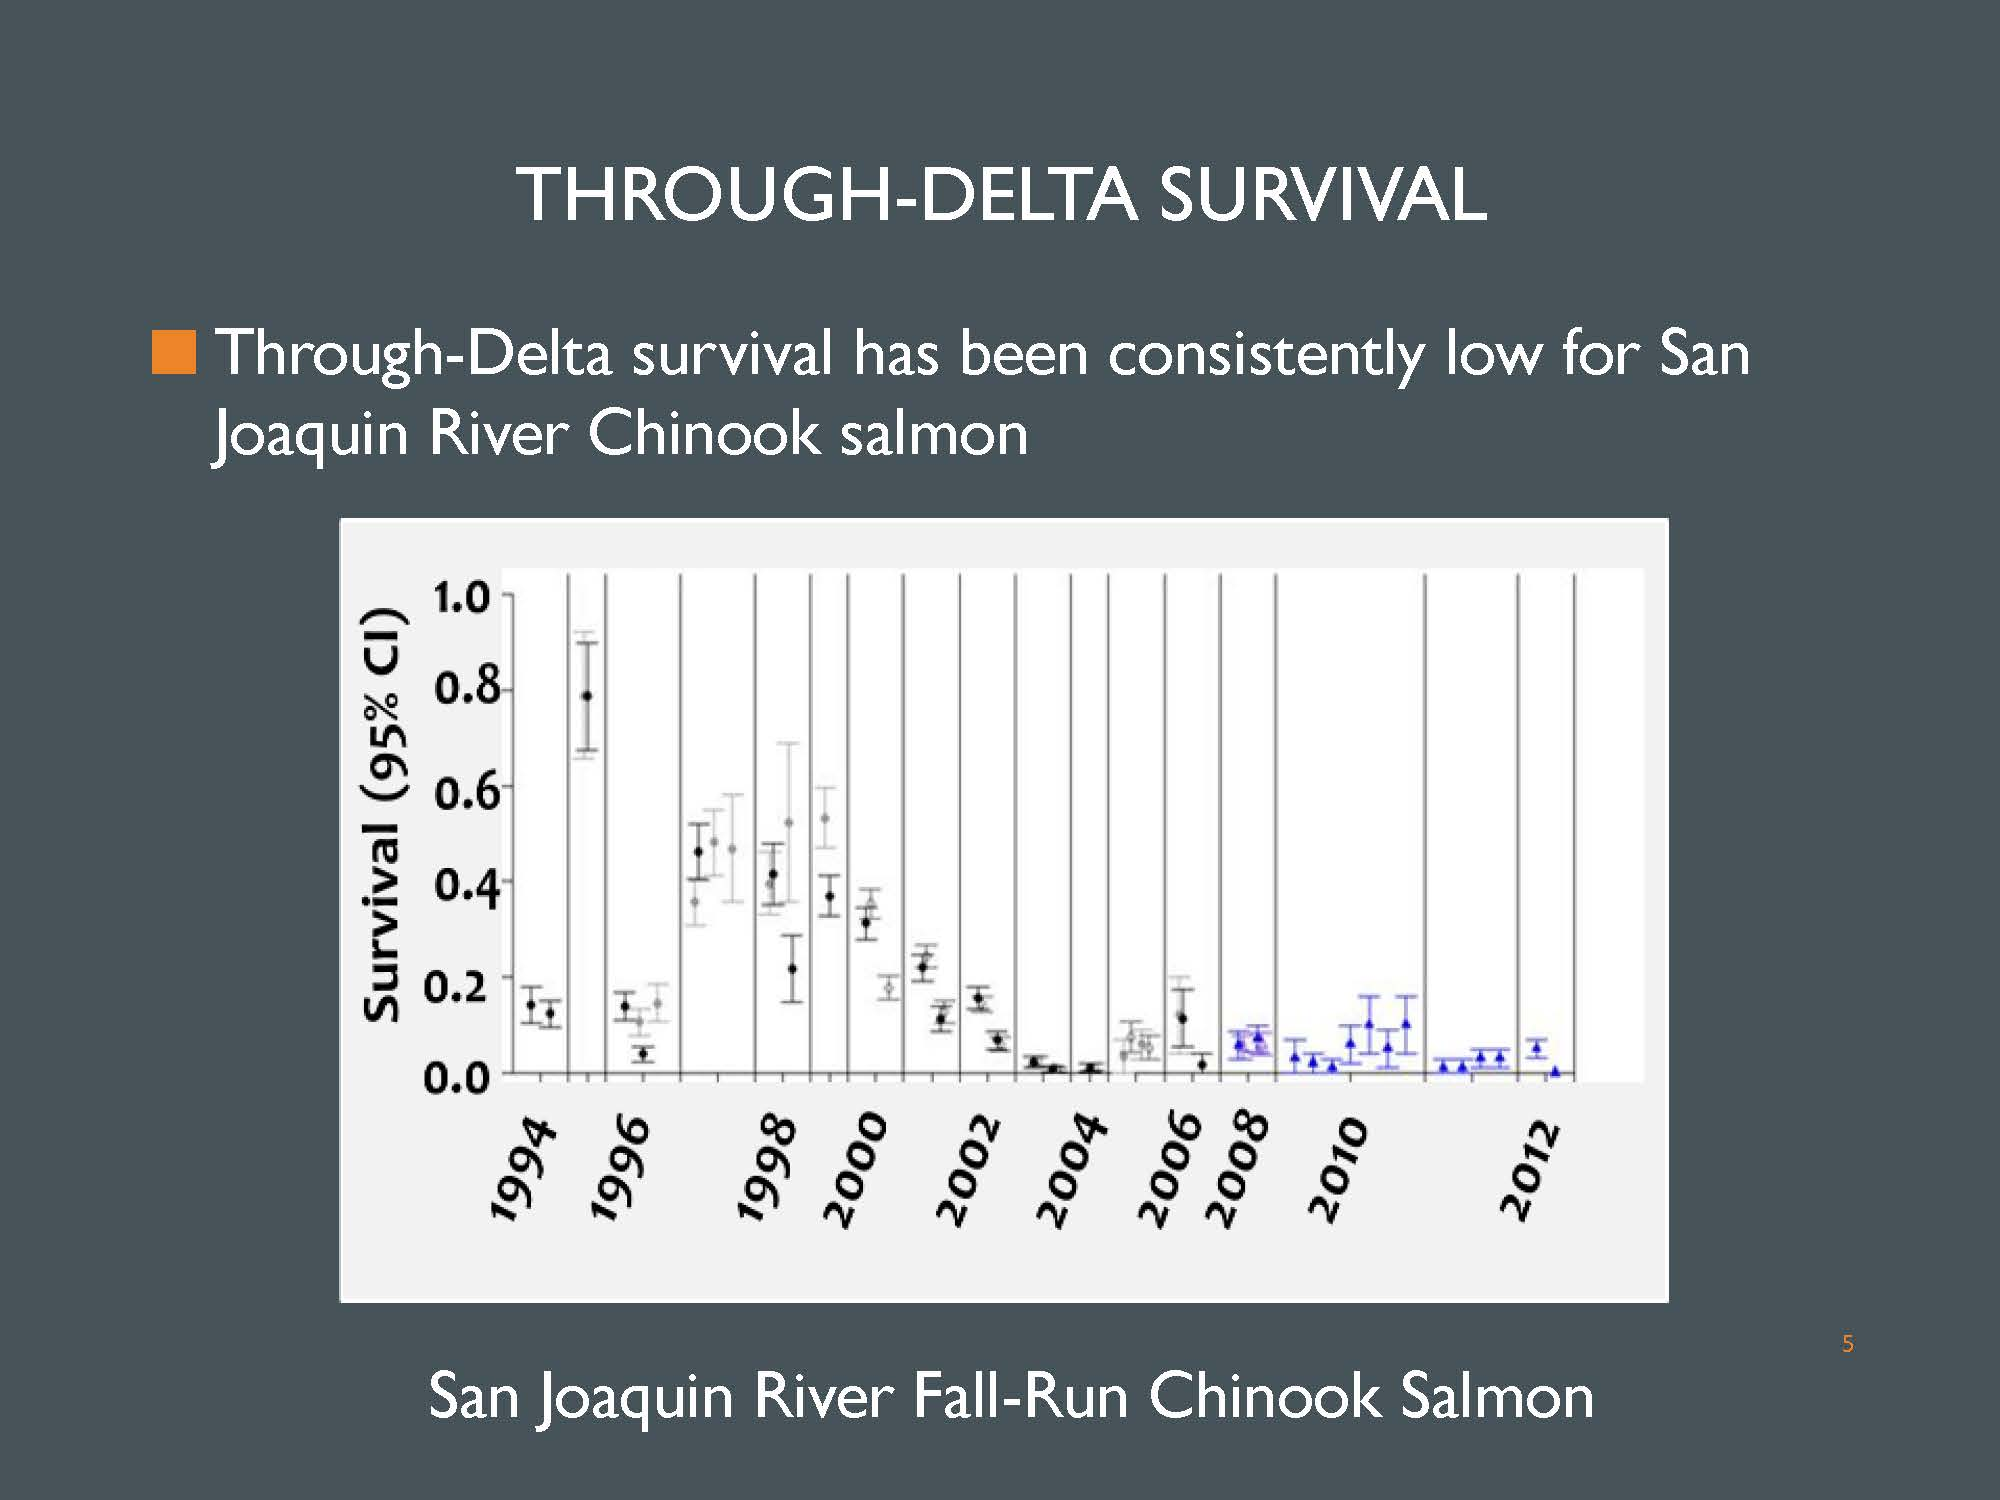 Bay delta science conference the effects of water project dr buchanan began with survival data presenting a chart showing through delta survival for san joaquin river salmon most of the data comes from san geenschuldenfo Image collections